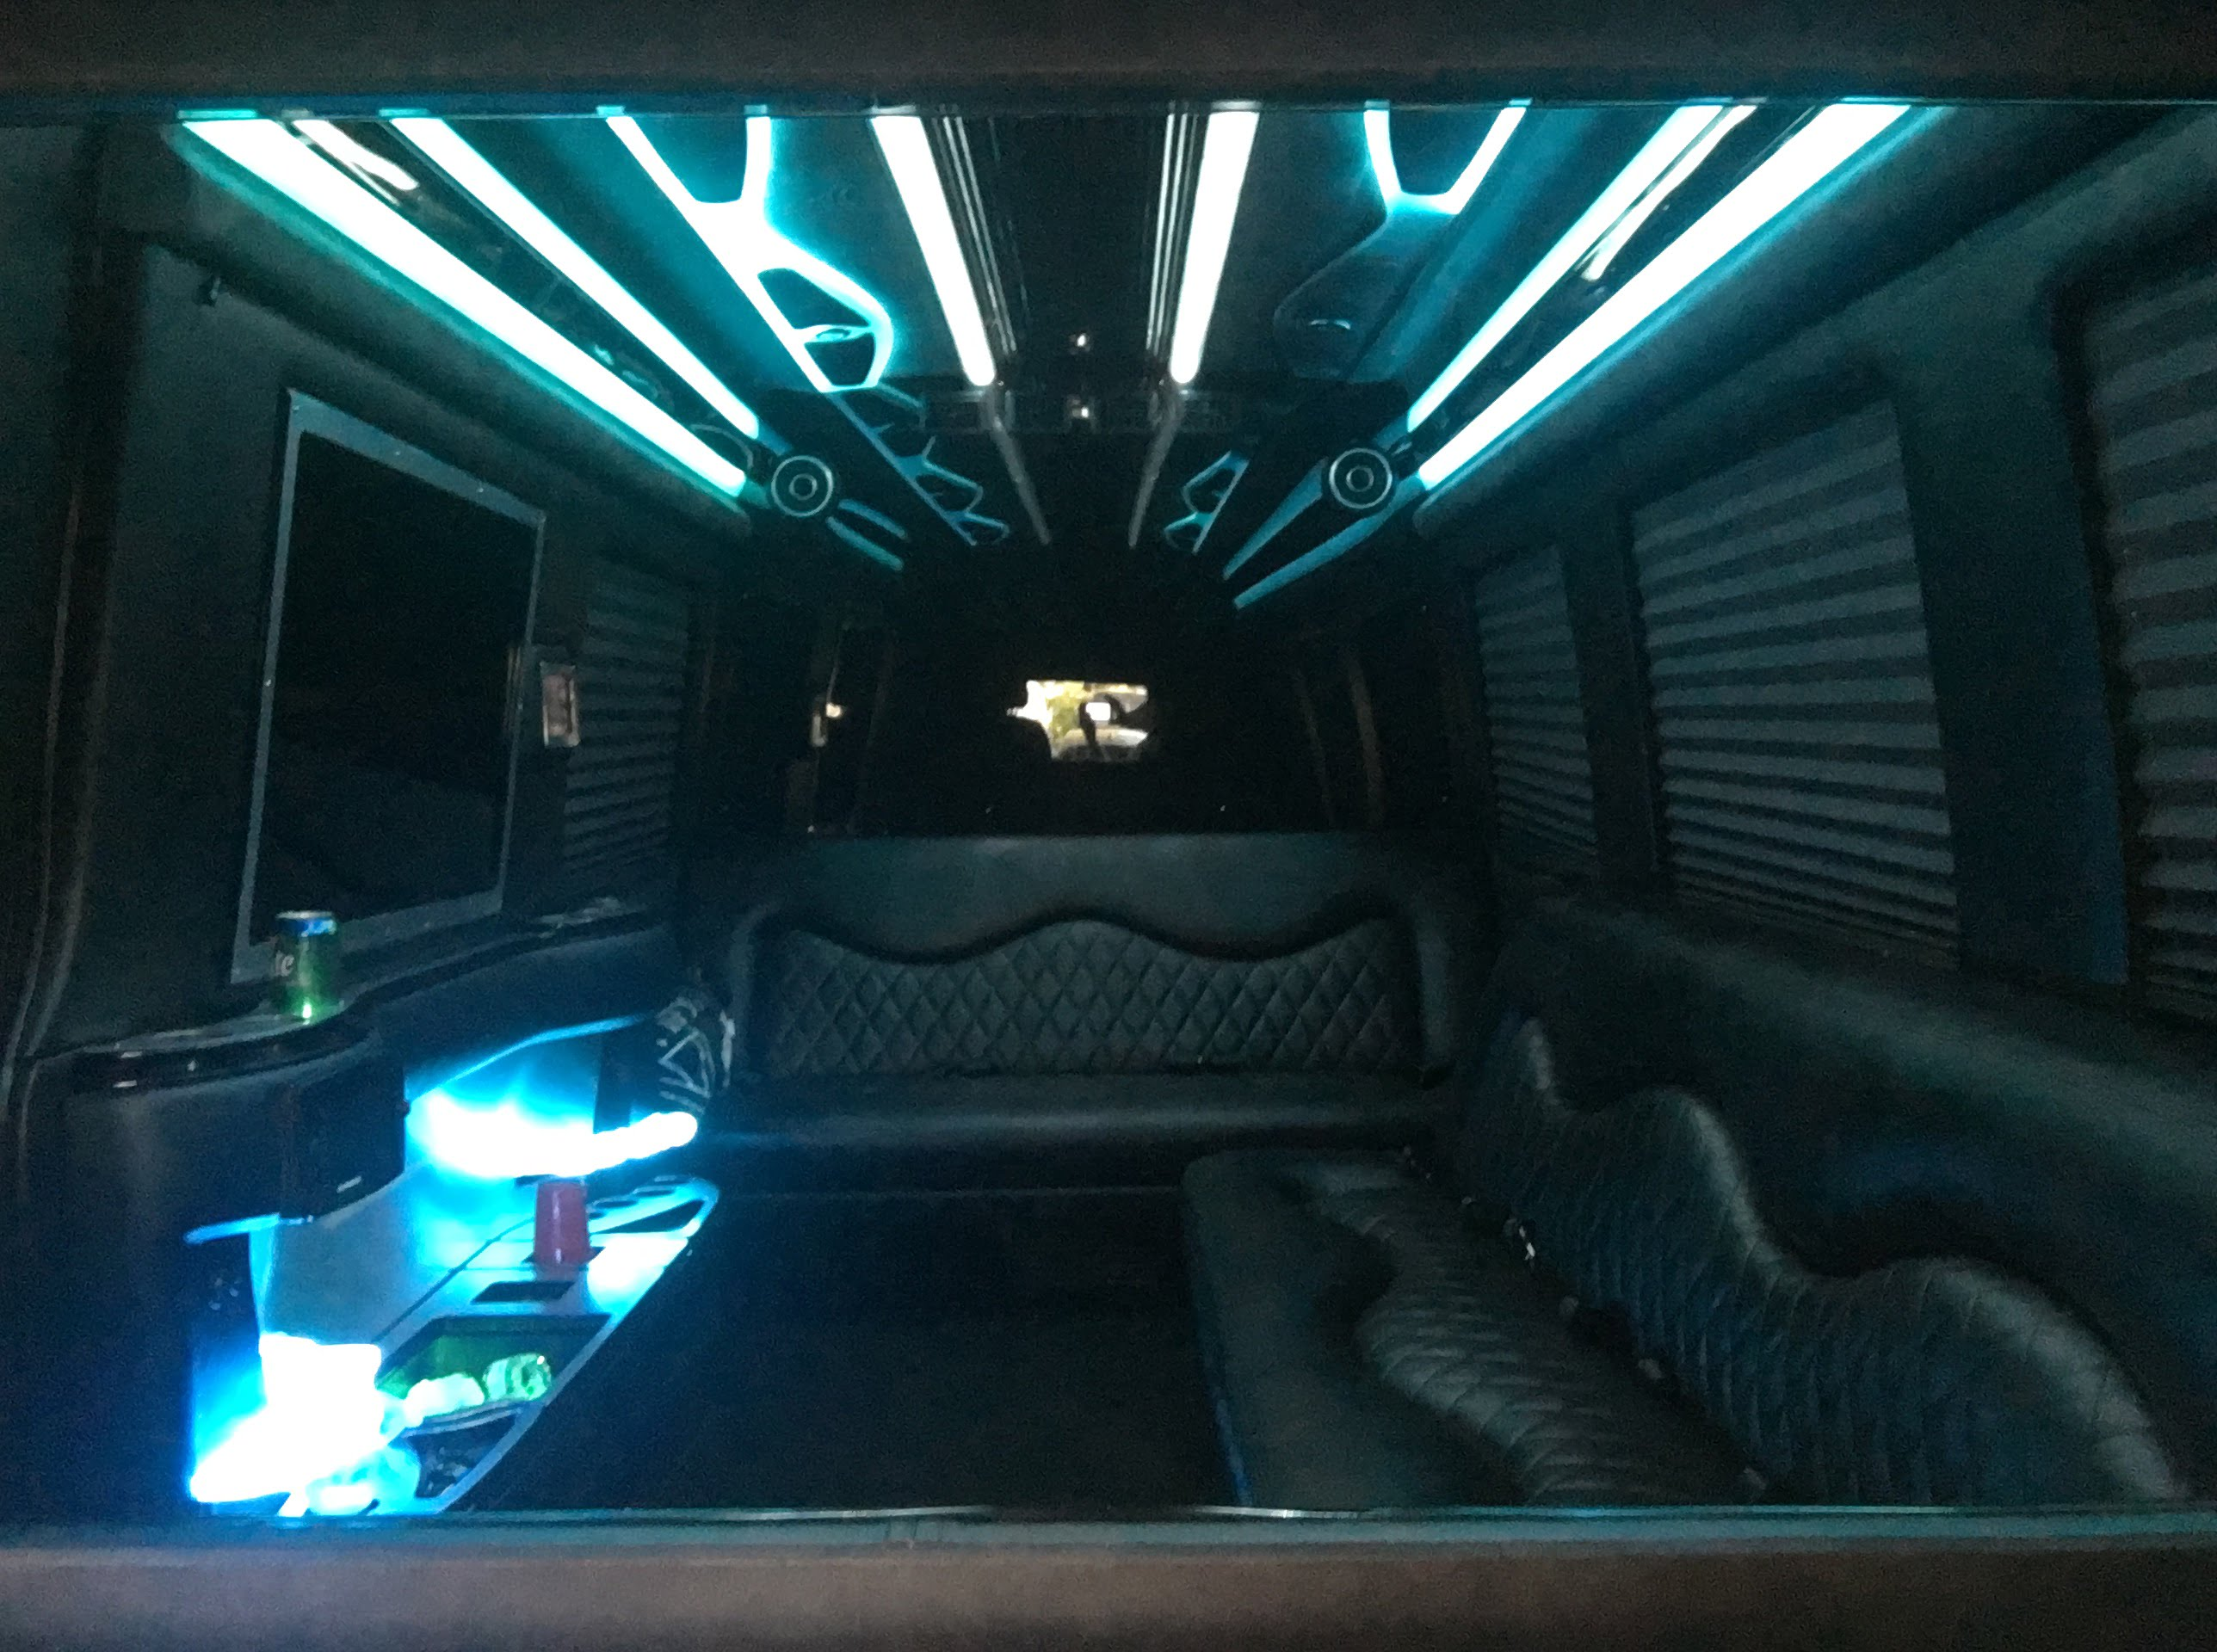 10 12 black Luxury Mercedes Benz sprinter limousine interior 201